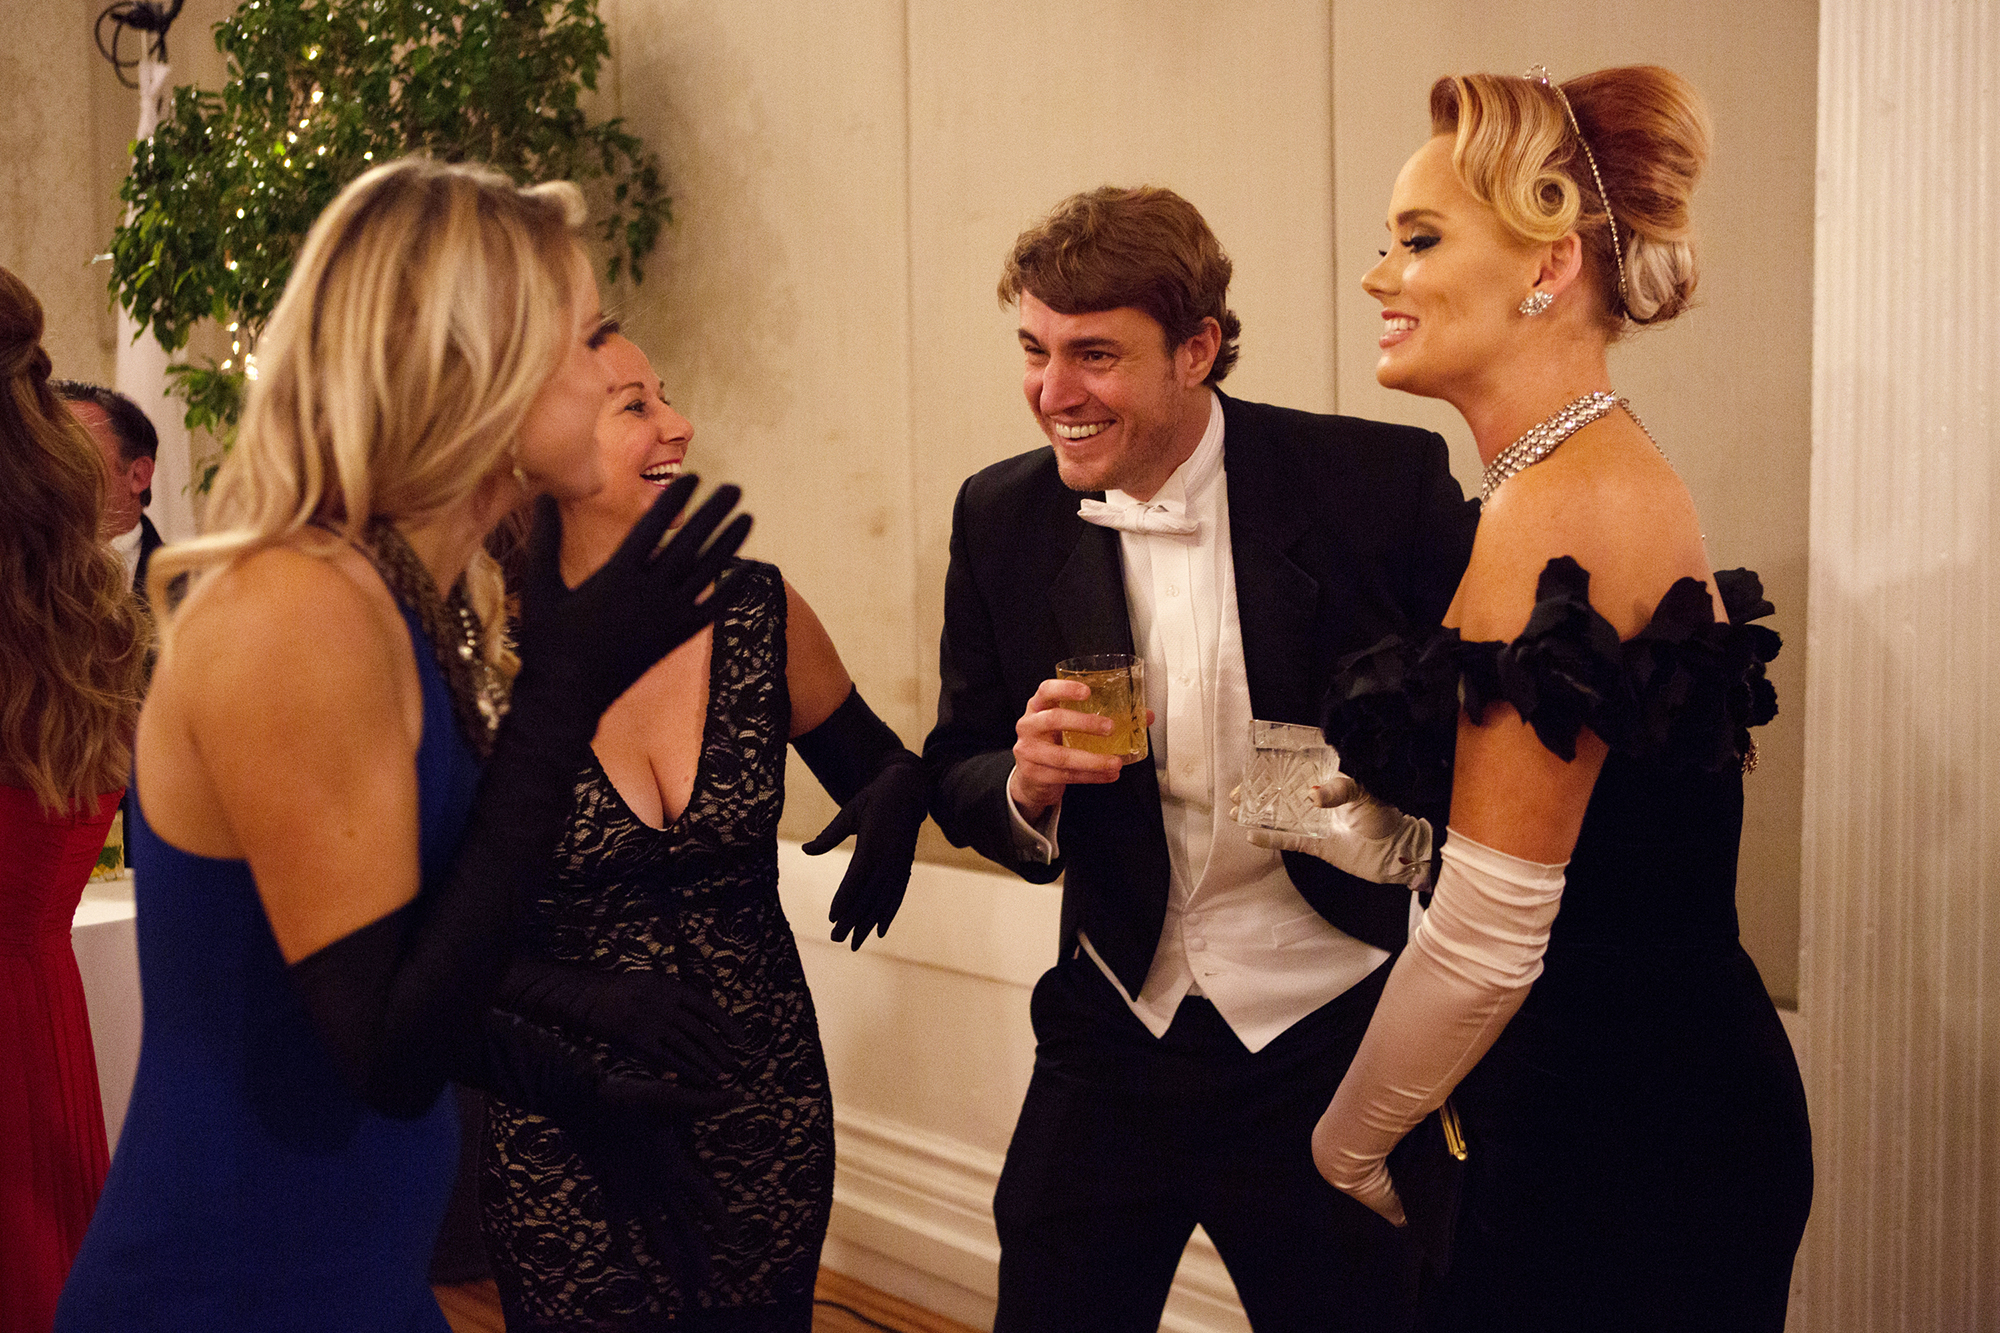 Everything We Know About 'Southern Charm' Season 6 - Bravo has yet to announce a return date for Southern Charm , but the last three seasons of the show have premiered during the first week of April.